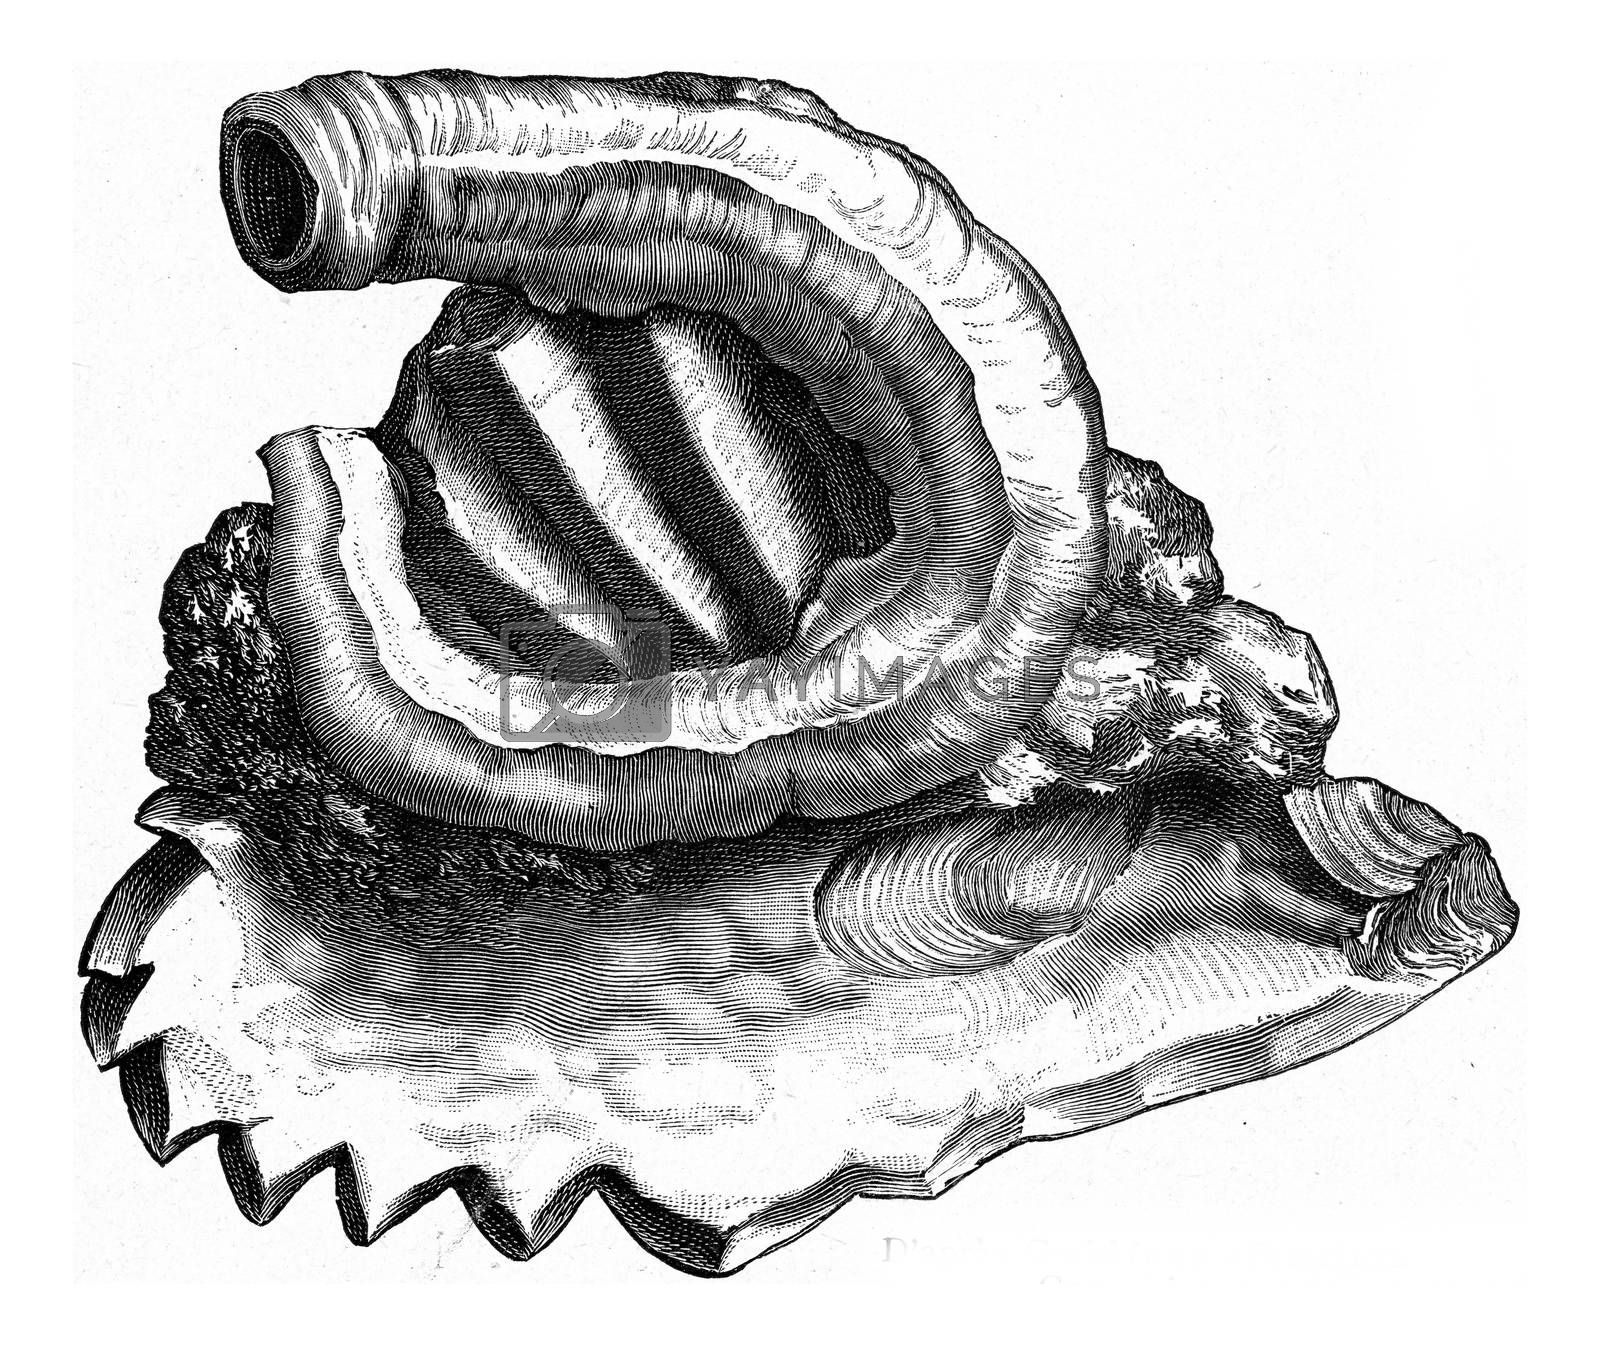 Serpule adhering to an oyster, vintage engraved illustration. From the Universe and Humanity, 1910.